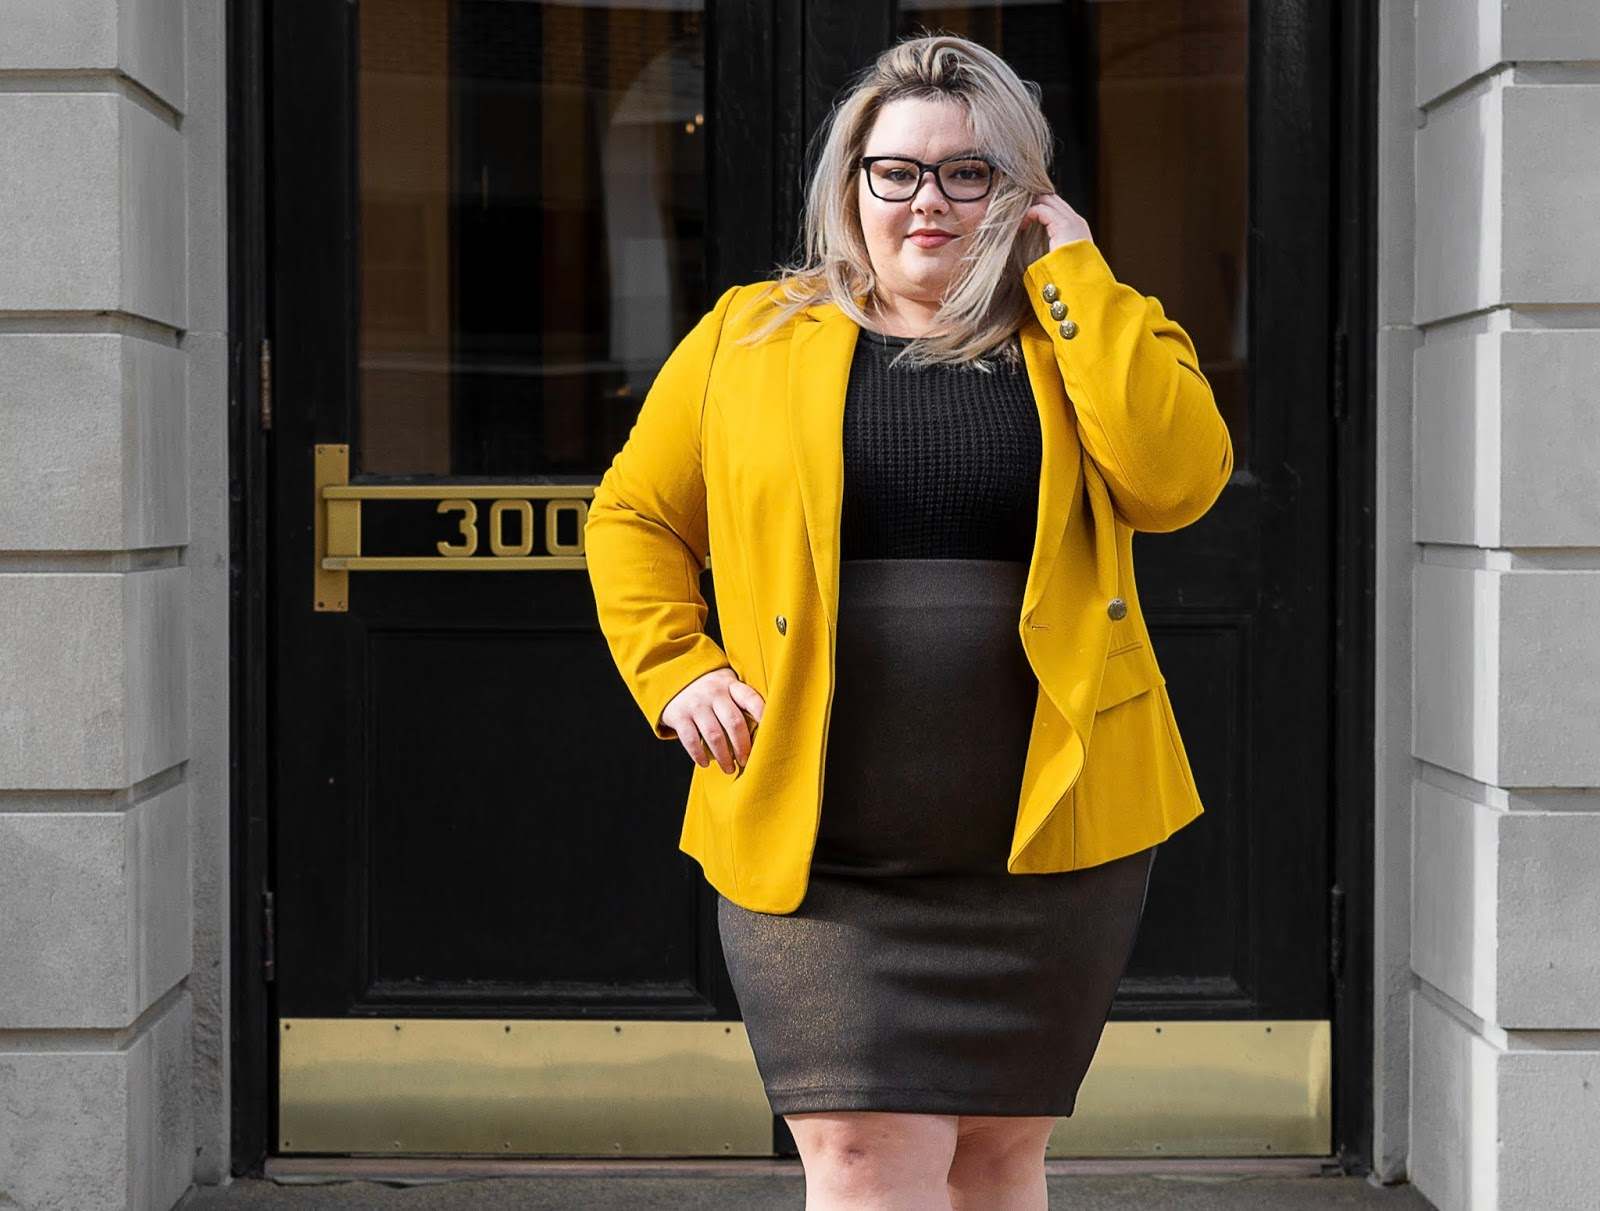 Chicago Plus Size Petite Fashion Blogger and model Natalie Craig, of Natalie in the City, reviews Marée Pour Toi's Mustard Compression Blazer and Foiled Scuba Skirt